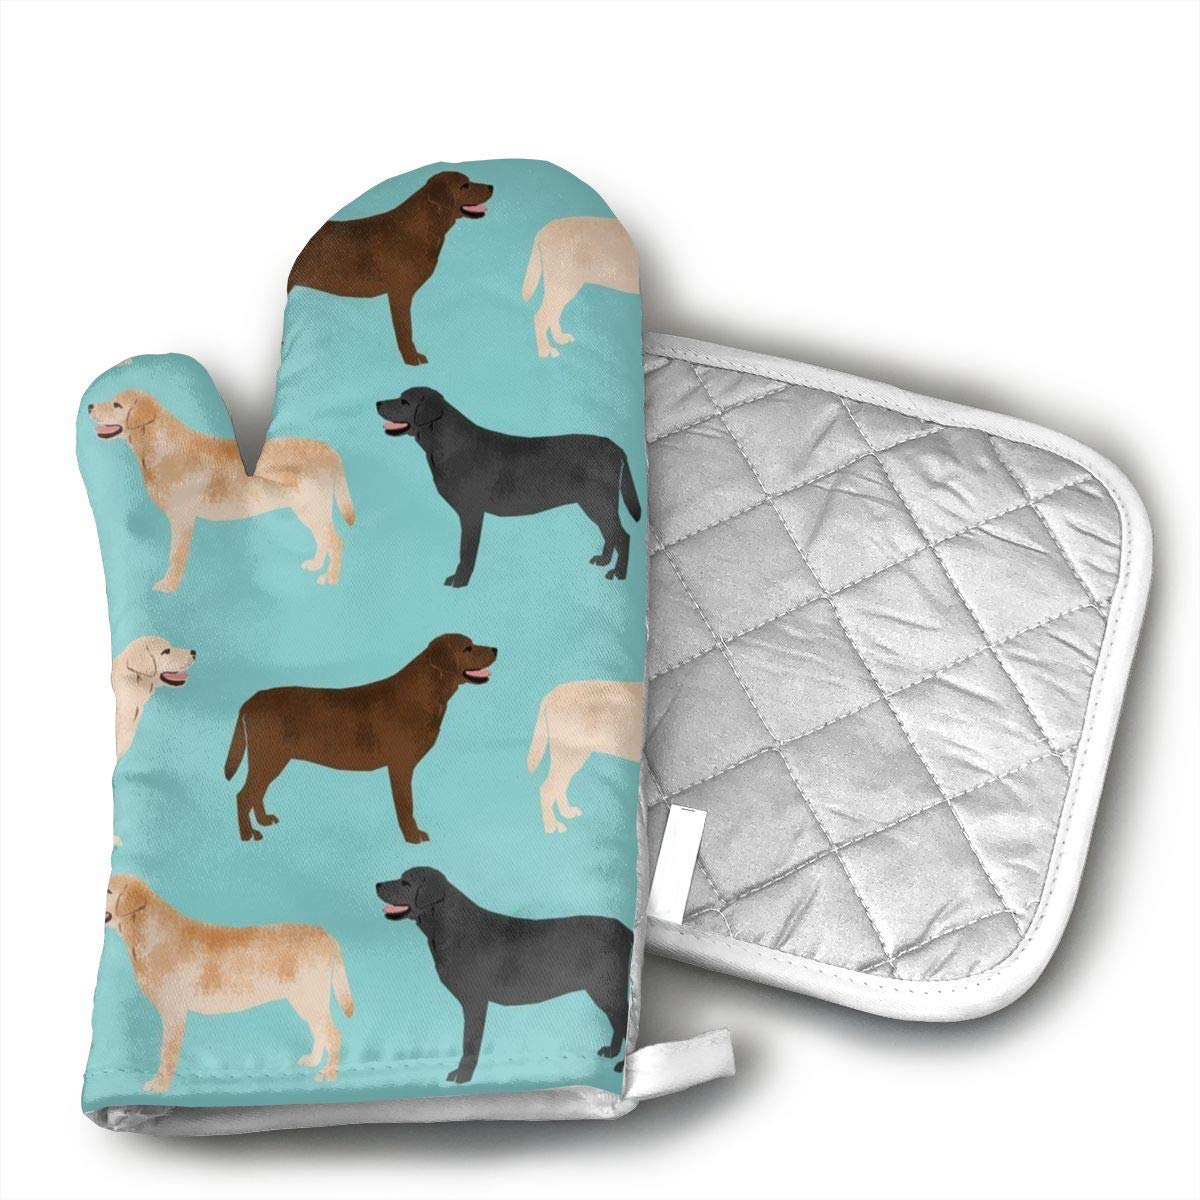 Cute Labradors Yellow Chocolate Black Lab Pet Dogs Kitchen Potholder - Heat Resistant Oven Gloves to Protect Hands and Surfaces with Non-Slip Grip,Ideal for Handling Hot Cookware Items.